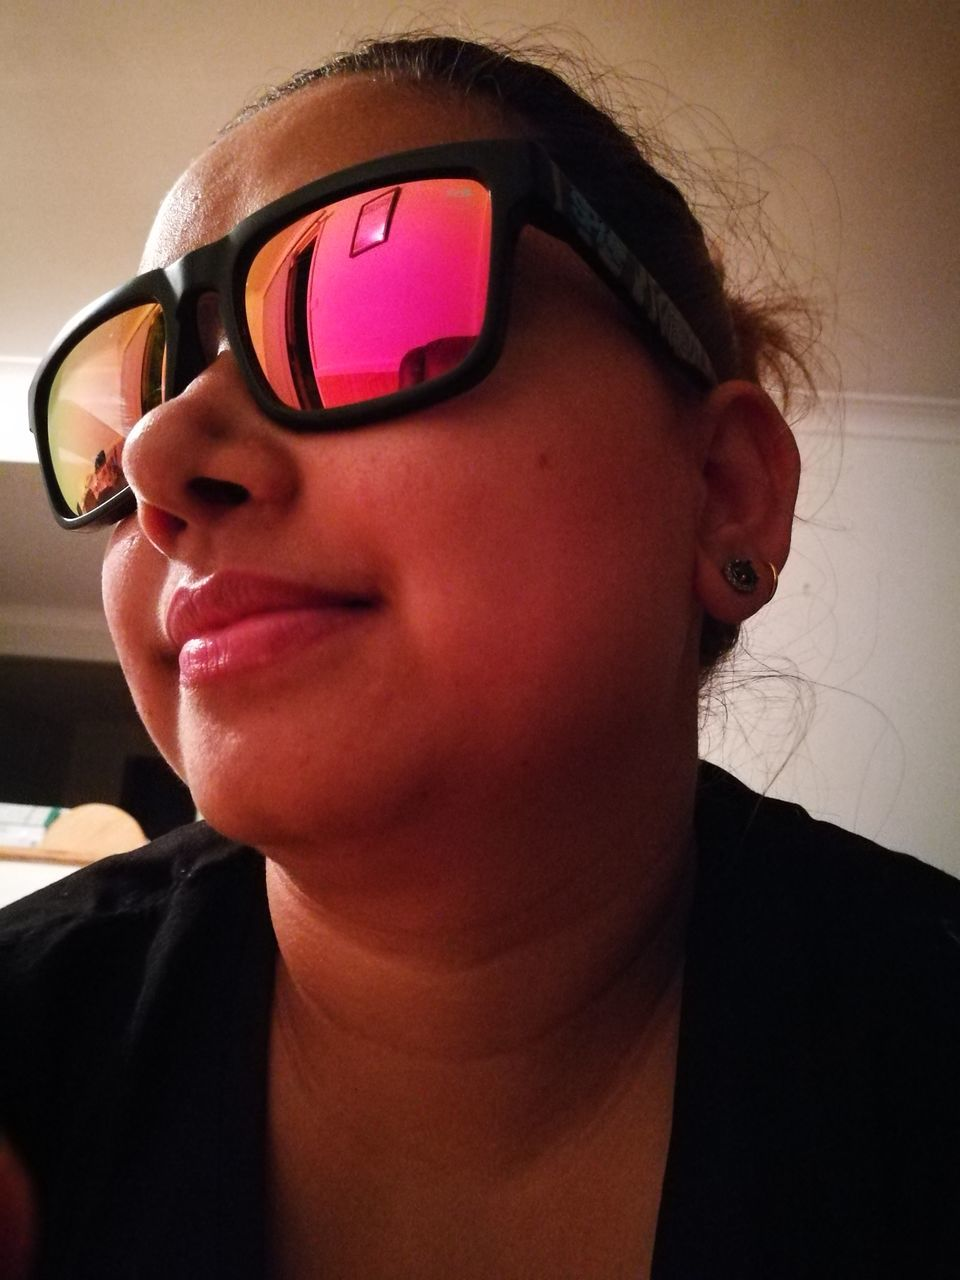 Close-Up Of Woman Wearing Sunglasses At Home